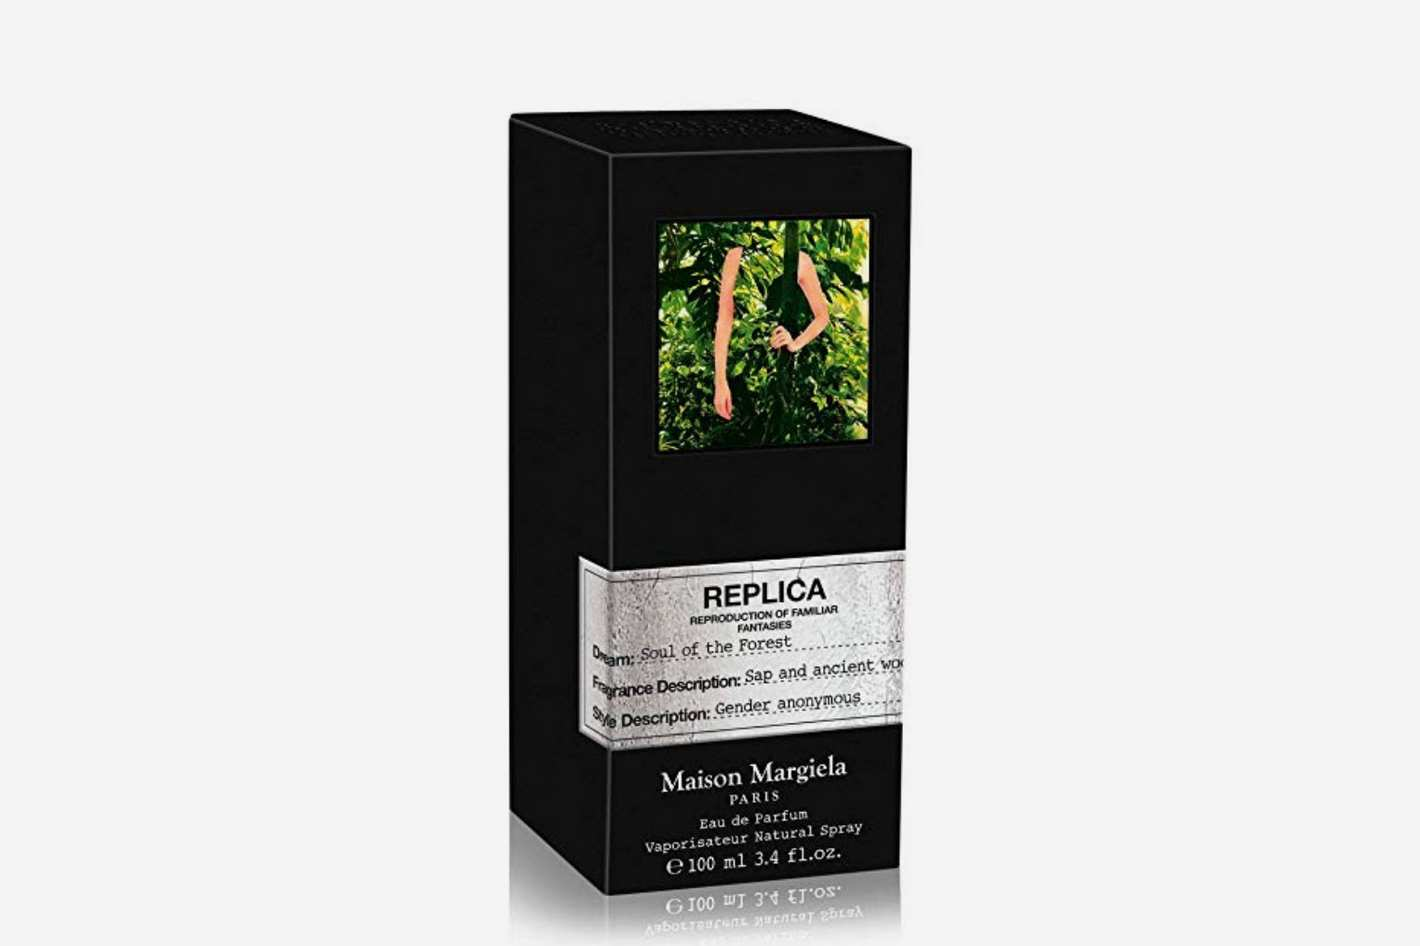 Maison Margiela Replica Fantasies: Soul of the Forest Perfume